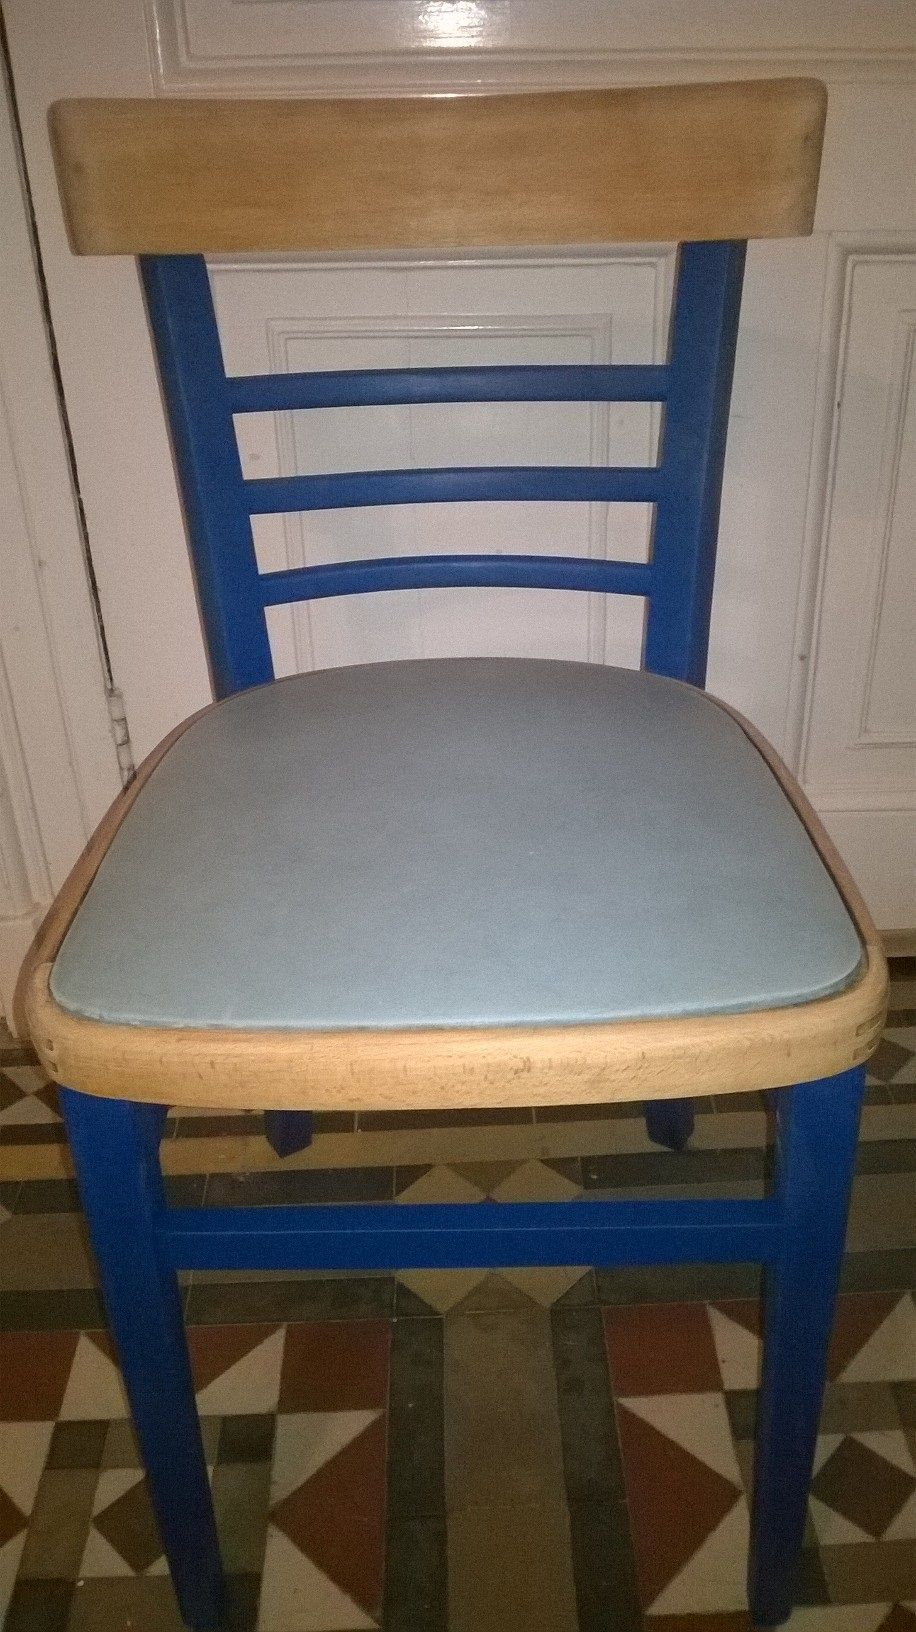 1950s kitchen chair, reloved in Nordic Blue by Autentico